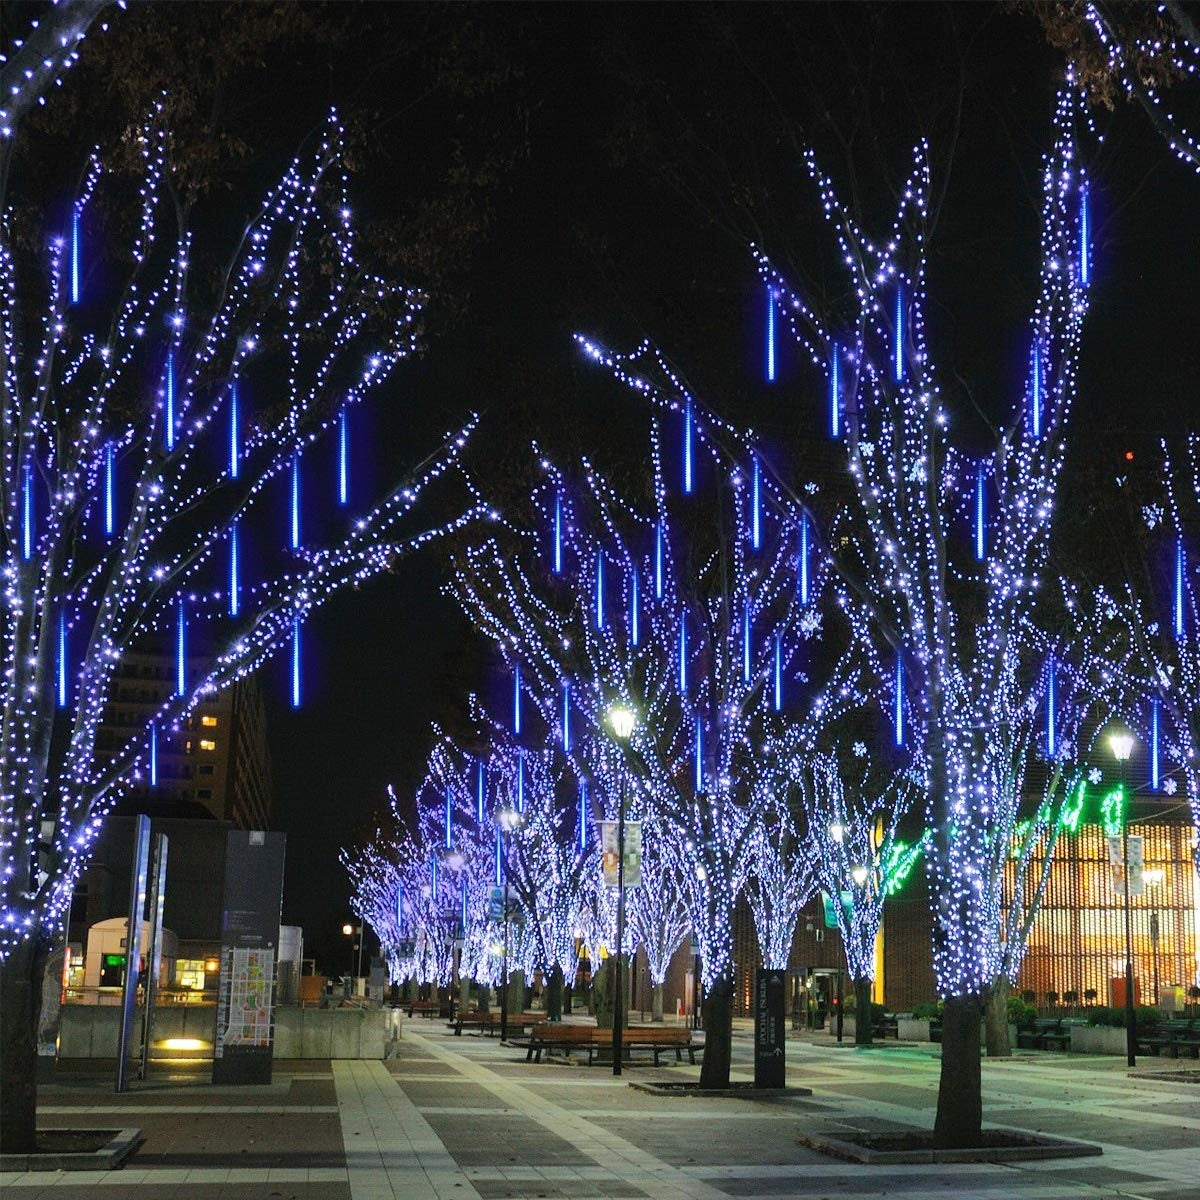 LED solar icicle tube lights covering trees